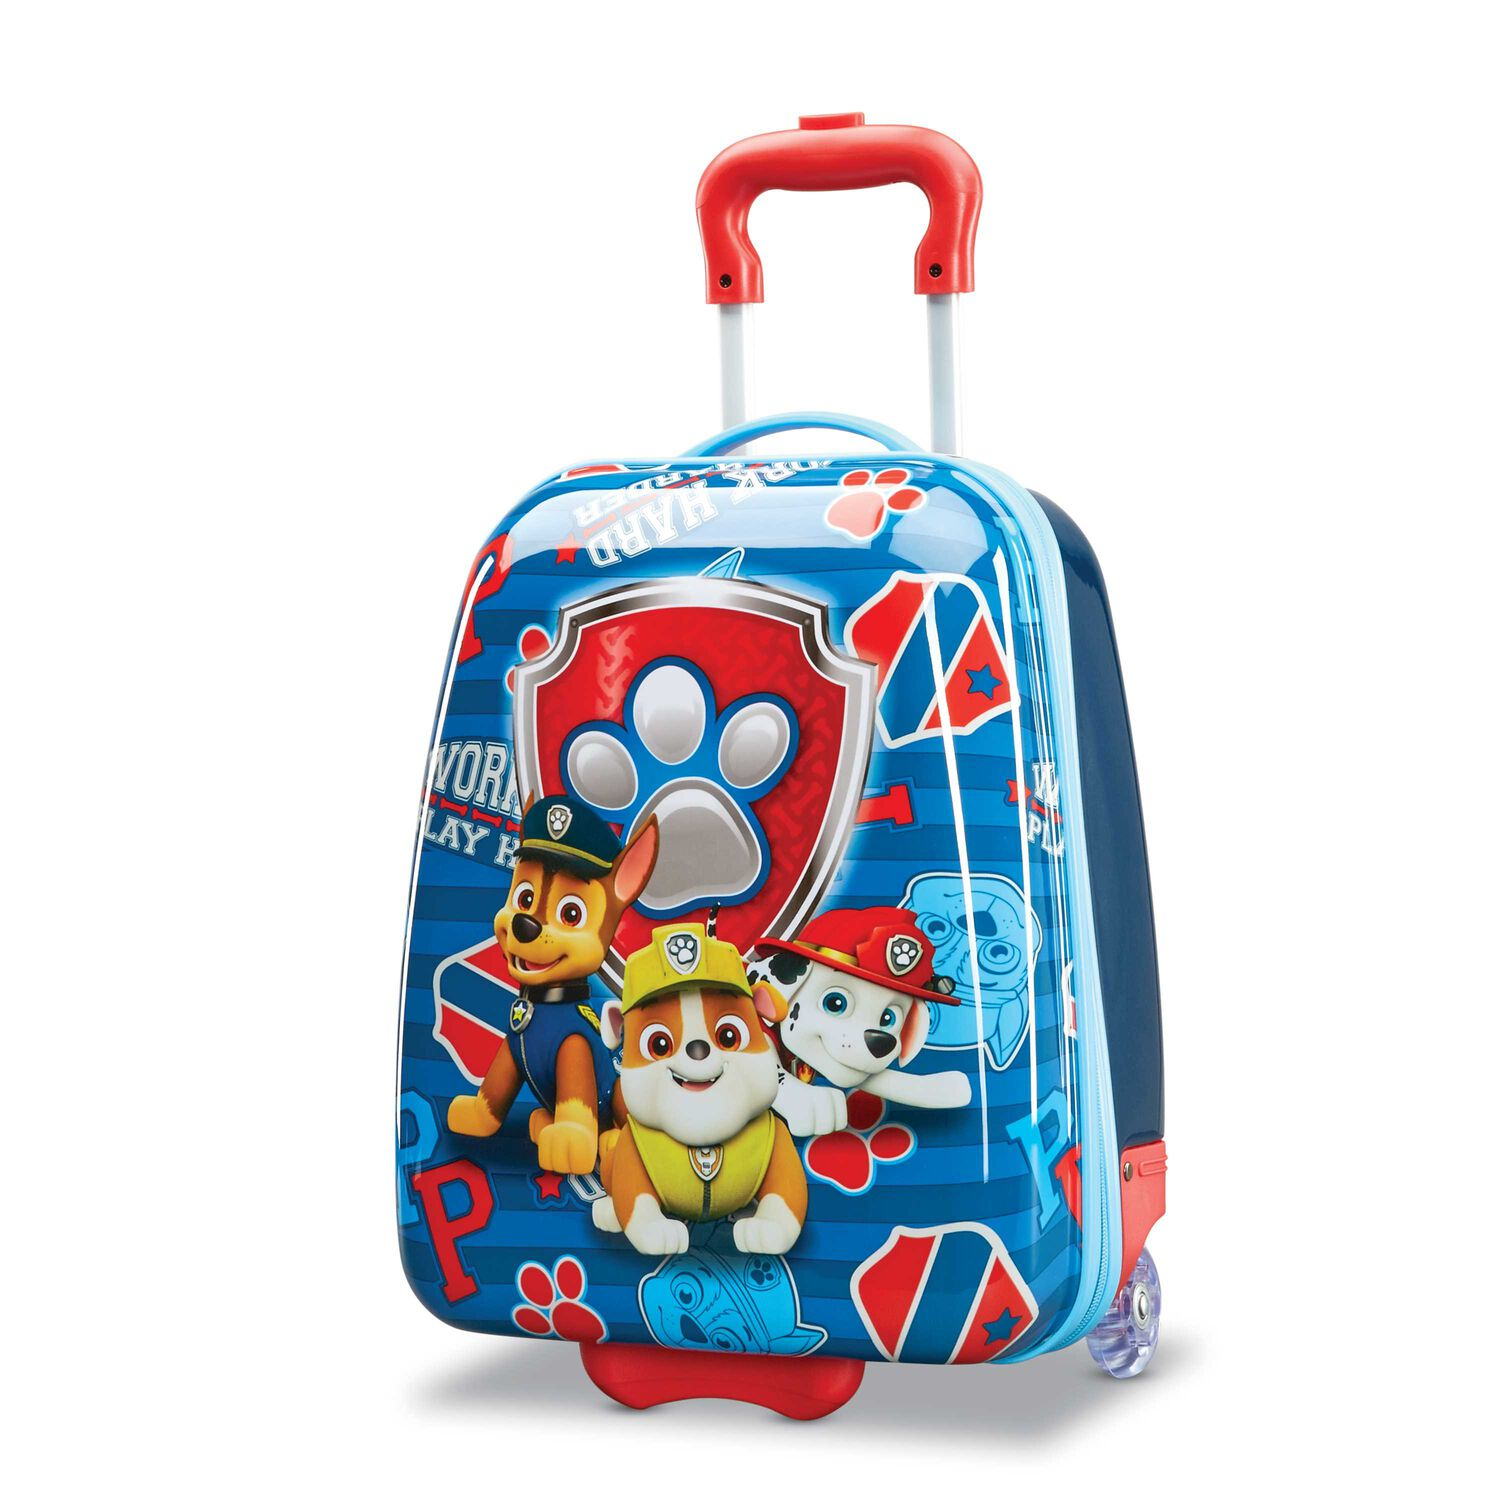 """American Tourister Nickelodeon Kids Paw Patrol 18"""" Hardside Upright in the color Paw Patrol."""